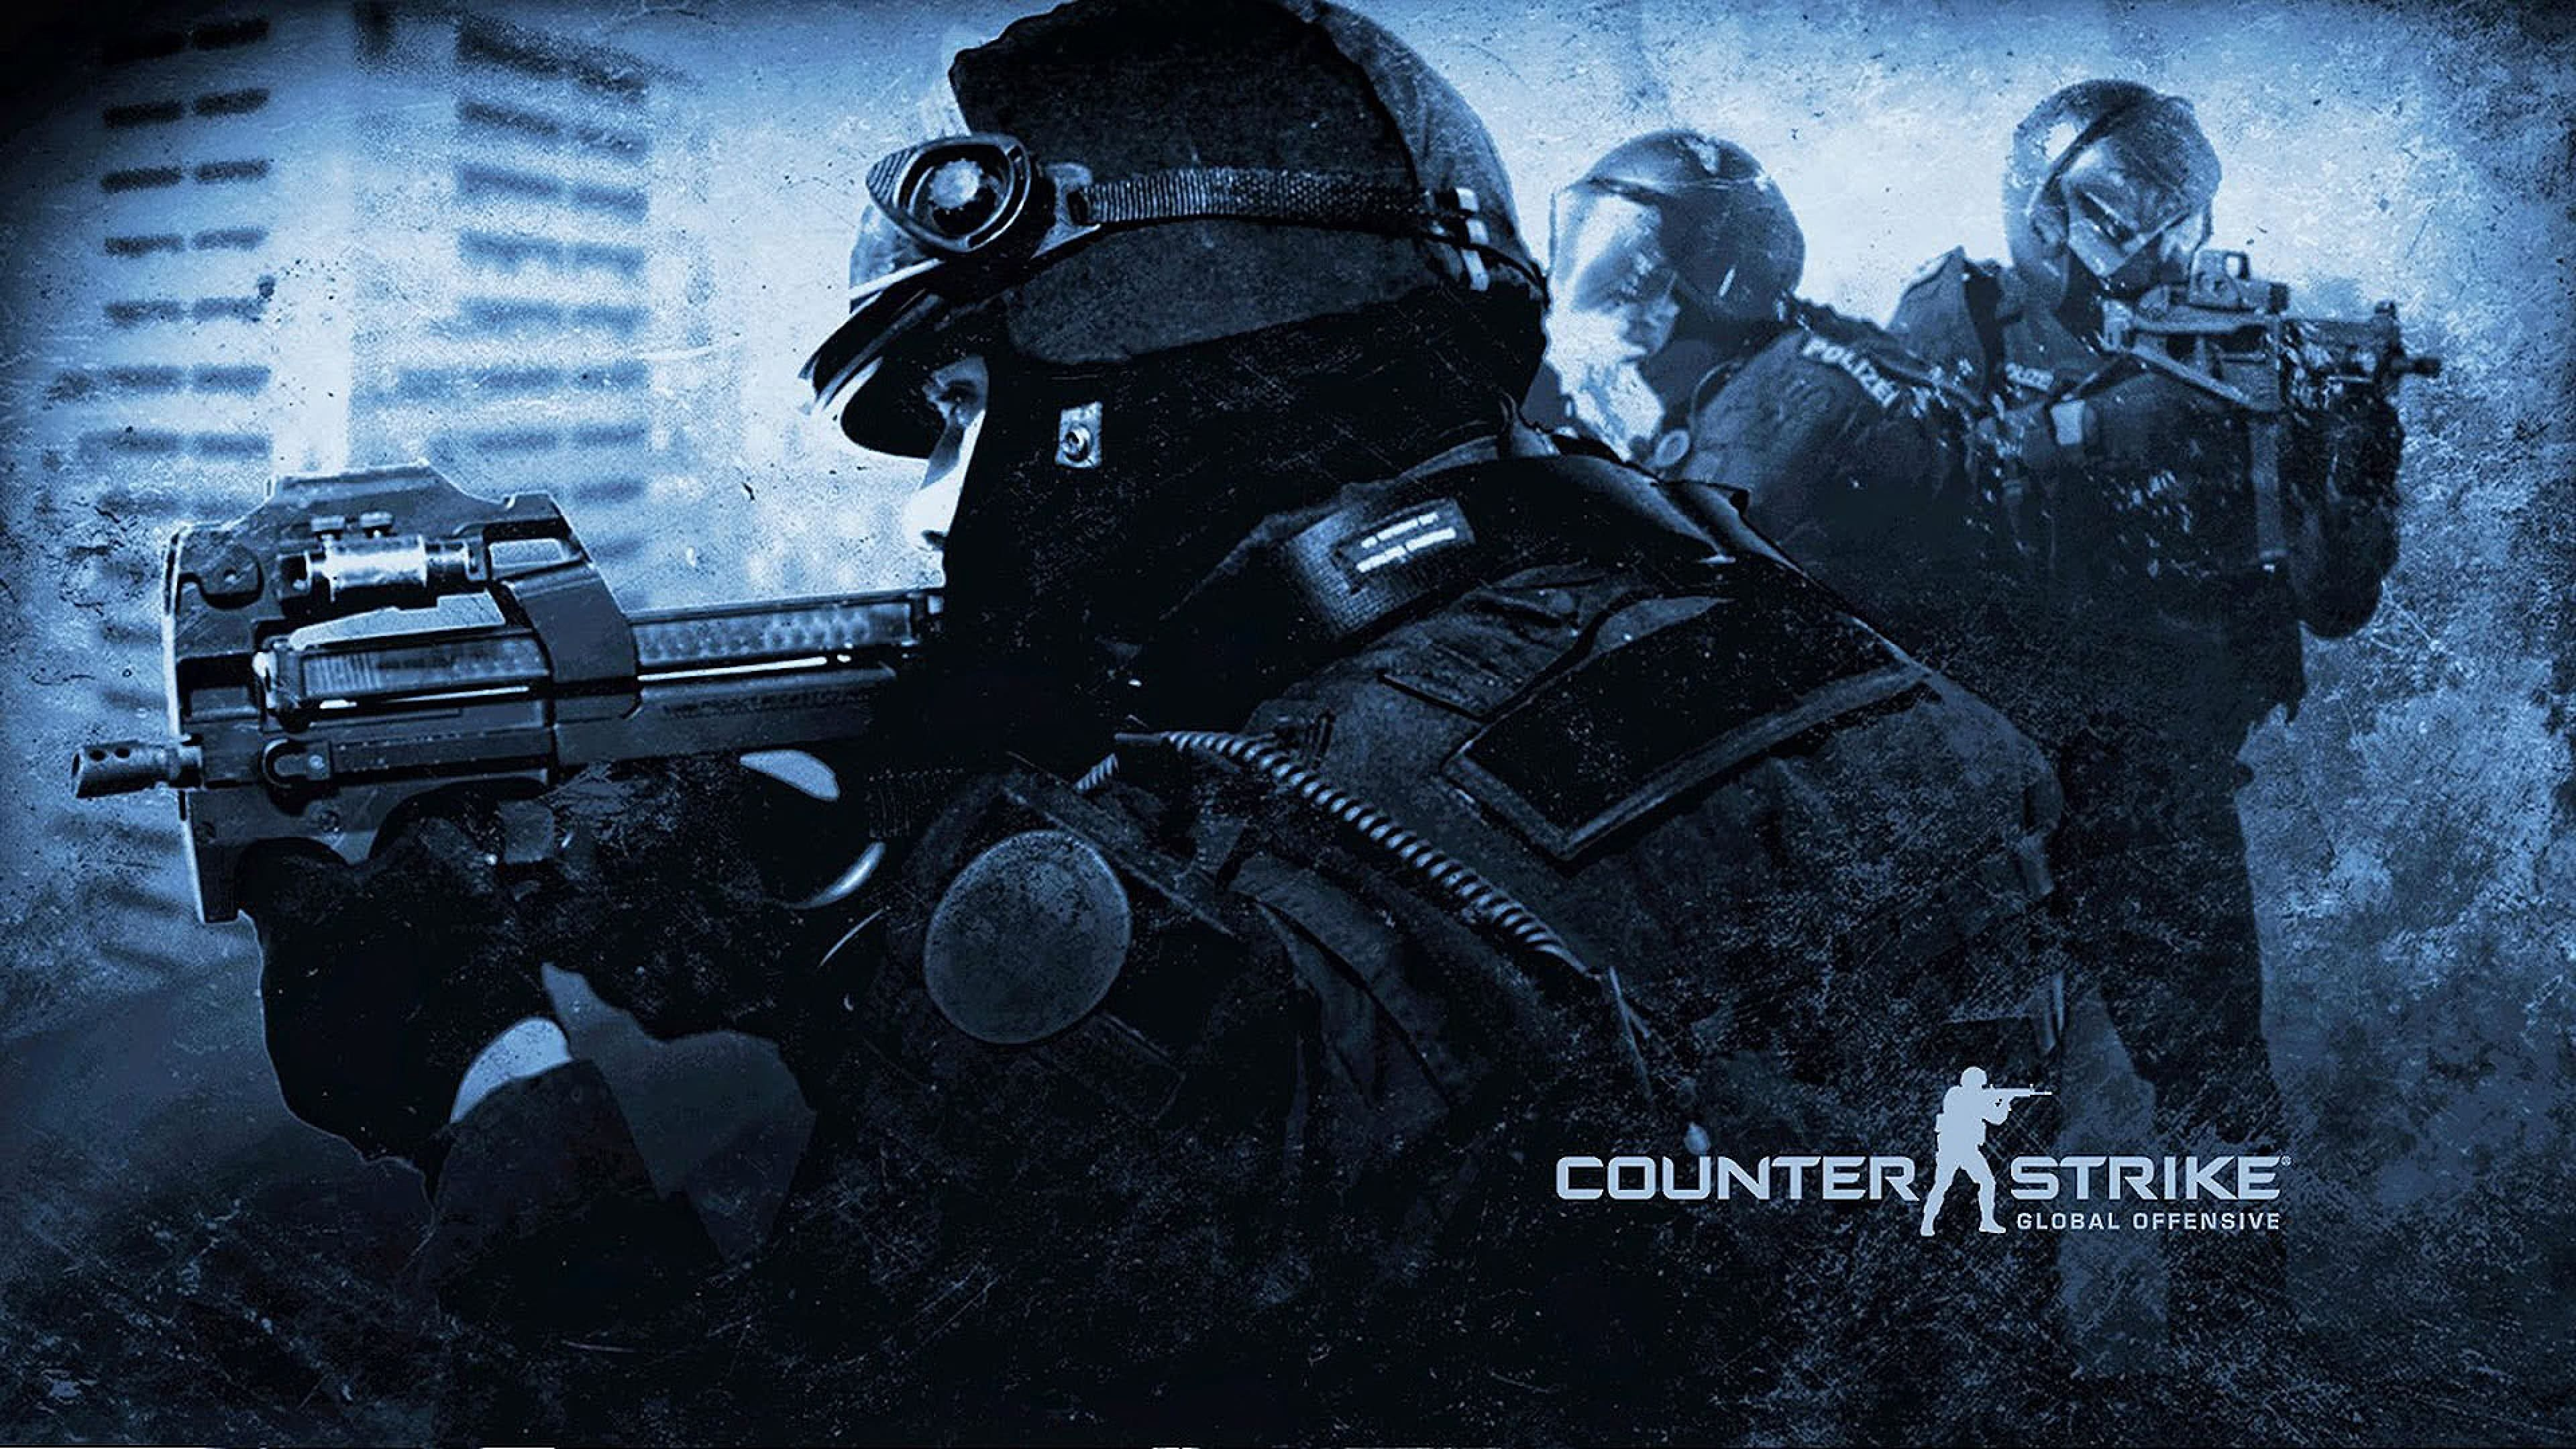 counter strike global offensive cs:go uhd 4k wallpaper | pixelz